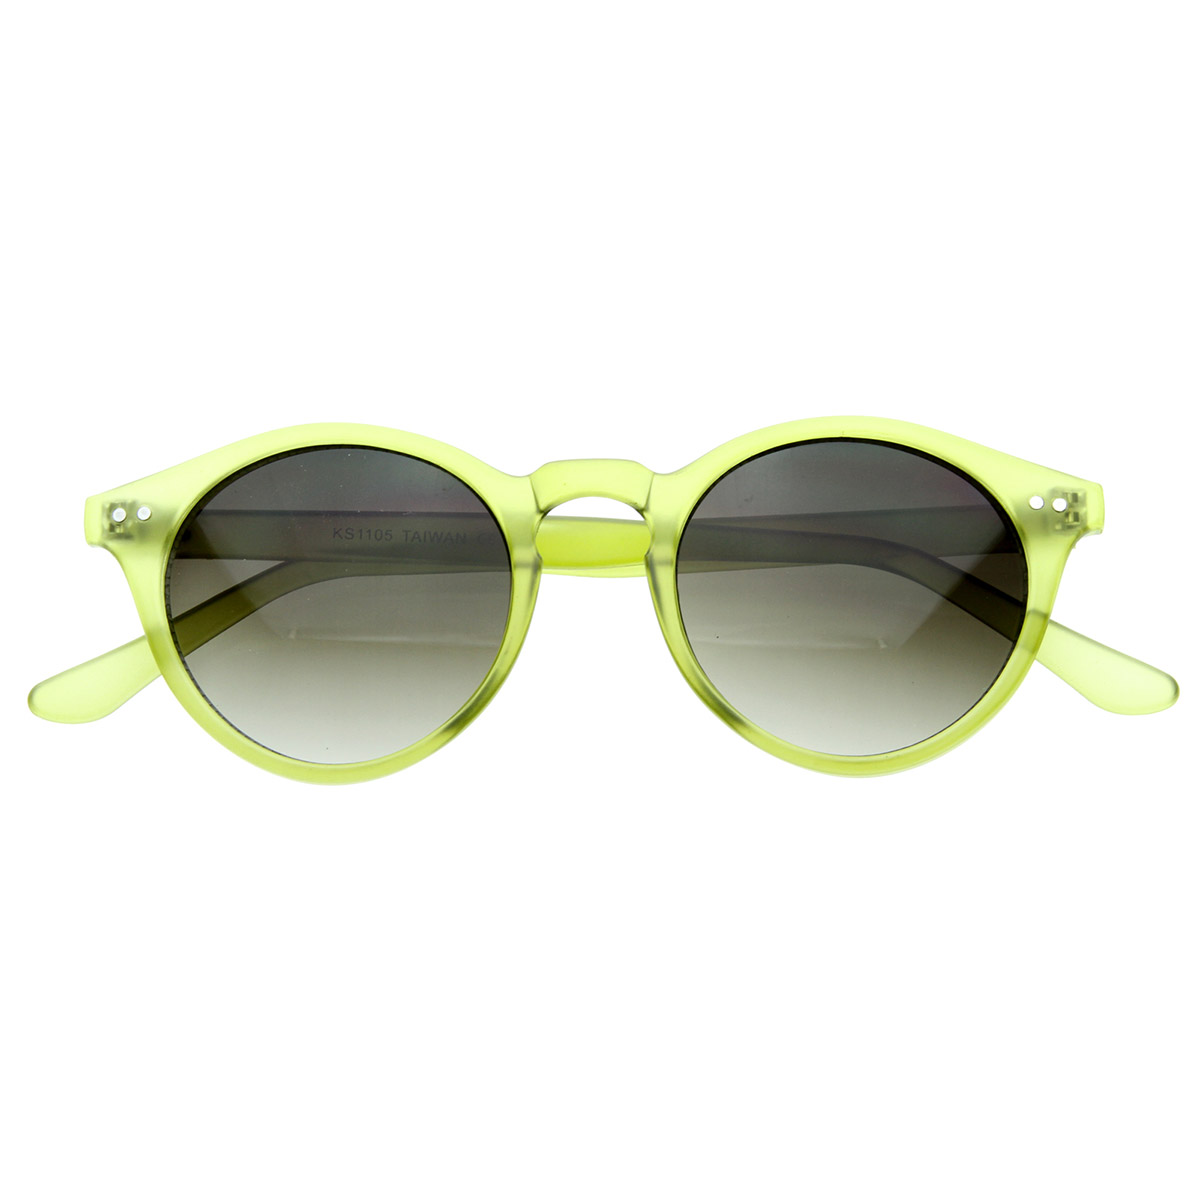 Vintage-Inspired-Small-Round-Circle-Key-Hole-Retro-P3-Sunglasses-with-Rivets